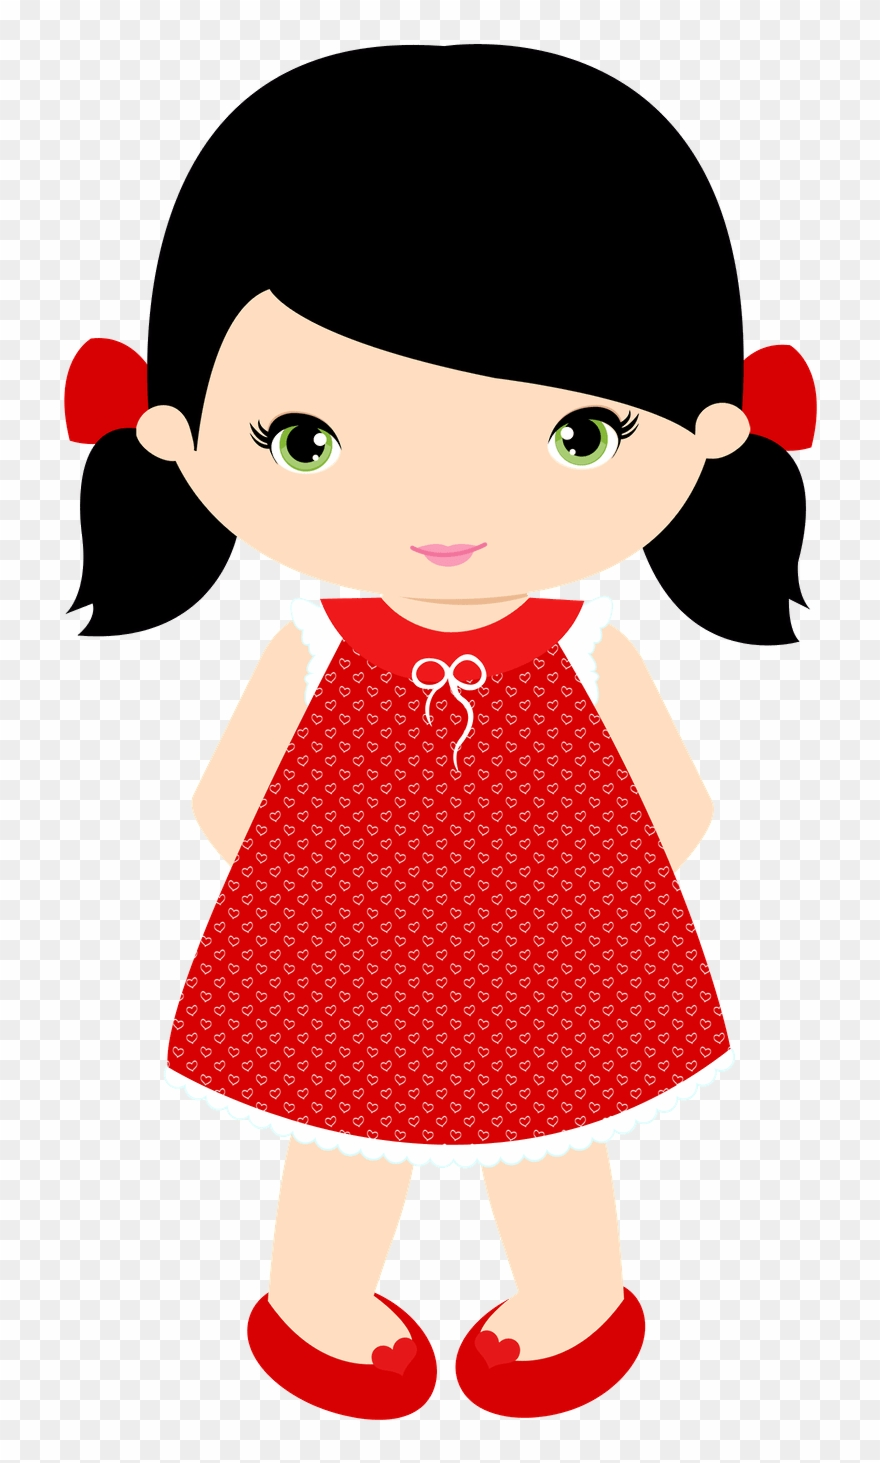 Little girl clipart clip royalty free download Little Girl Clip Art - Little Girl Clipart - Png Download (#3374156 ... clip royalty free download